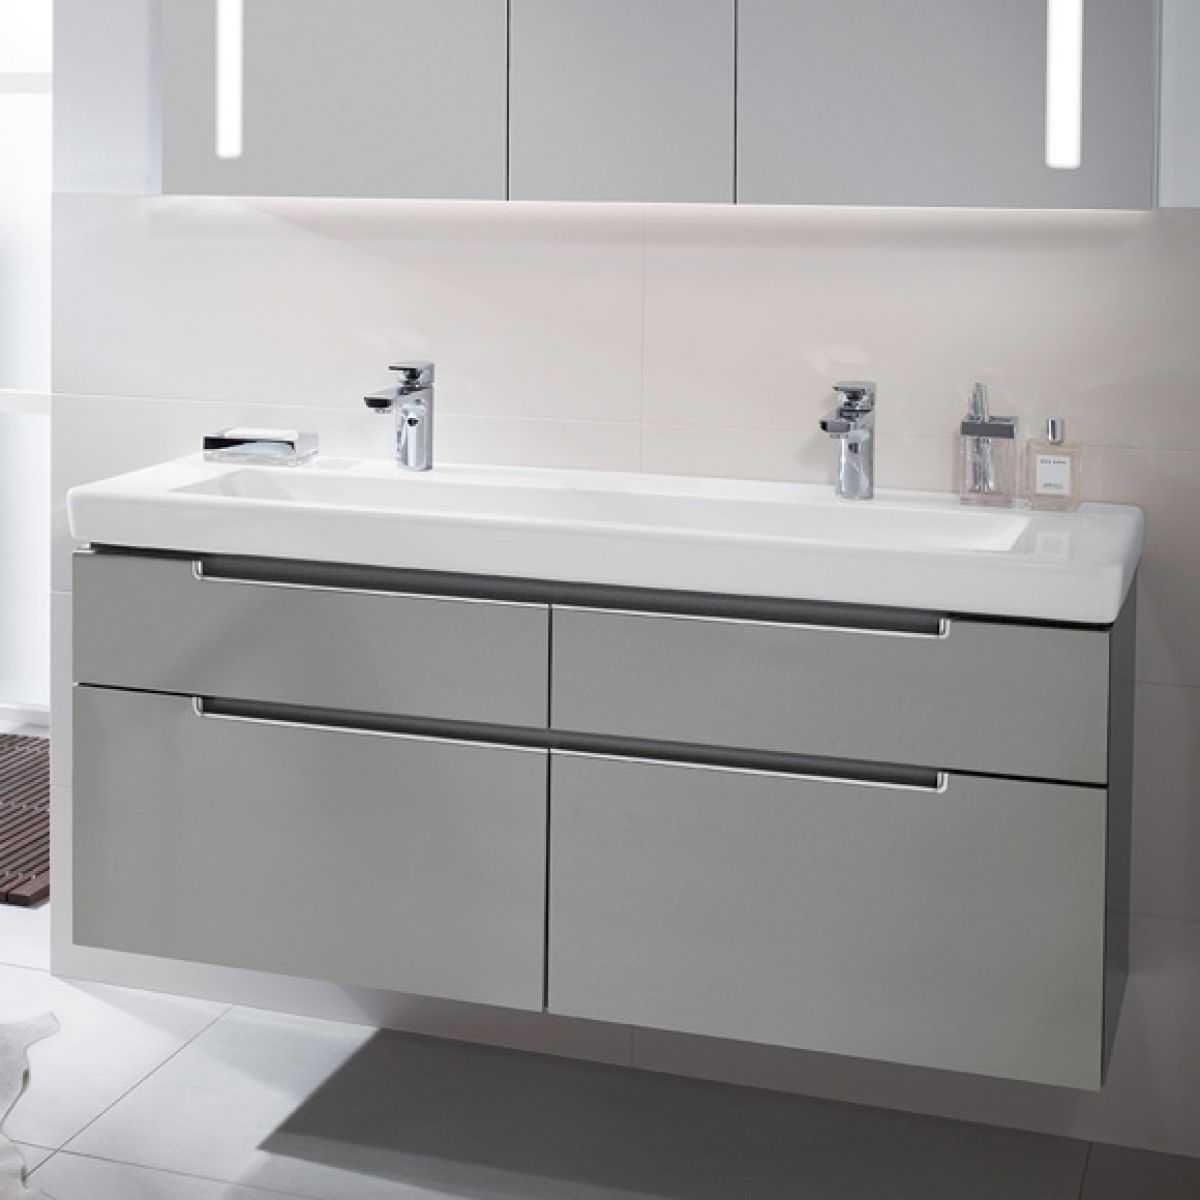 Villeroy and boch subway 2 0 double washbasin vanity unit - Villeroy and boch ...